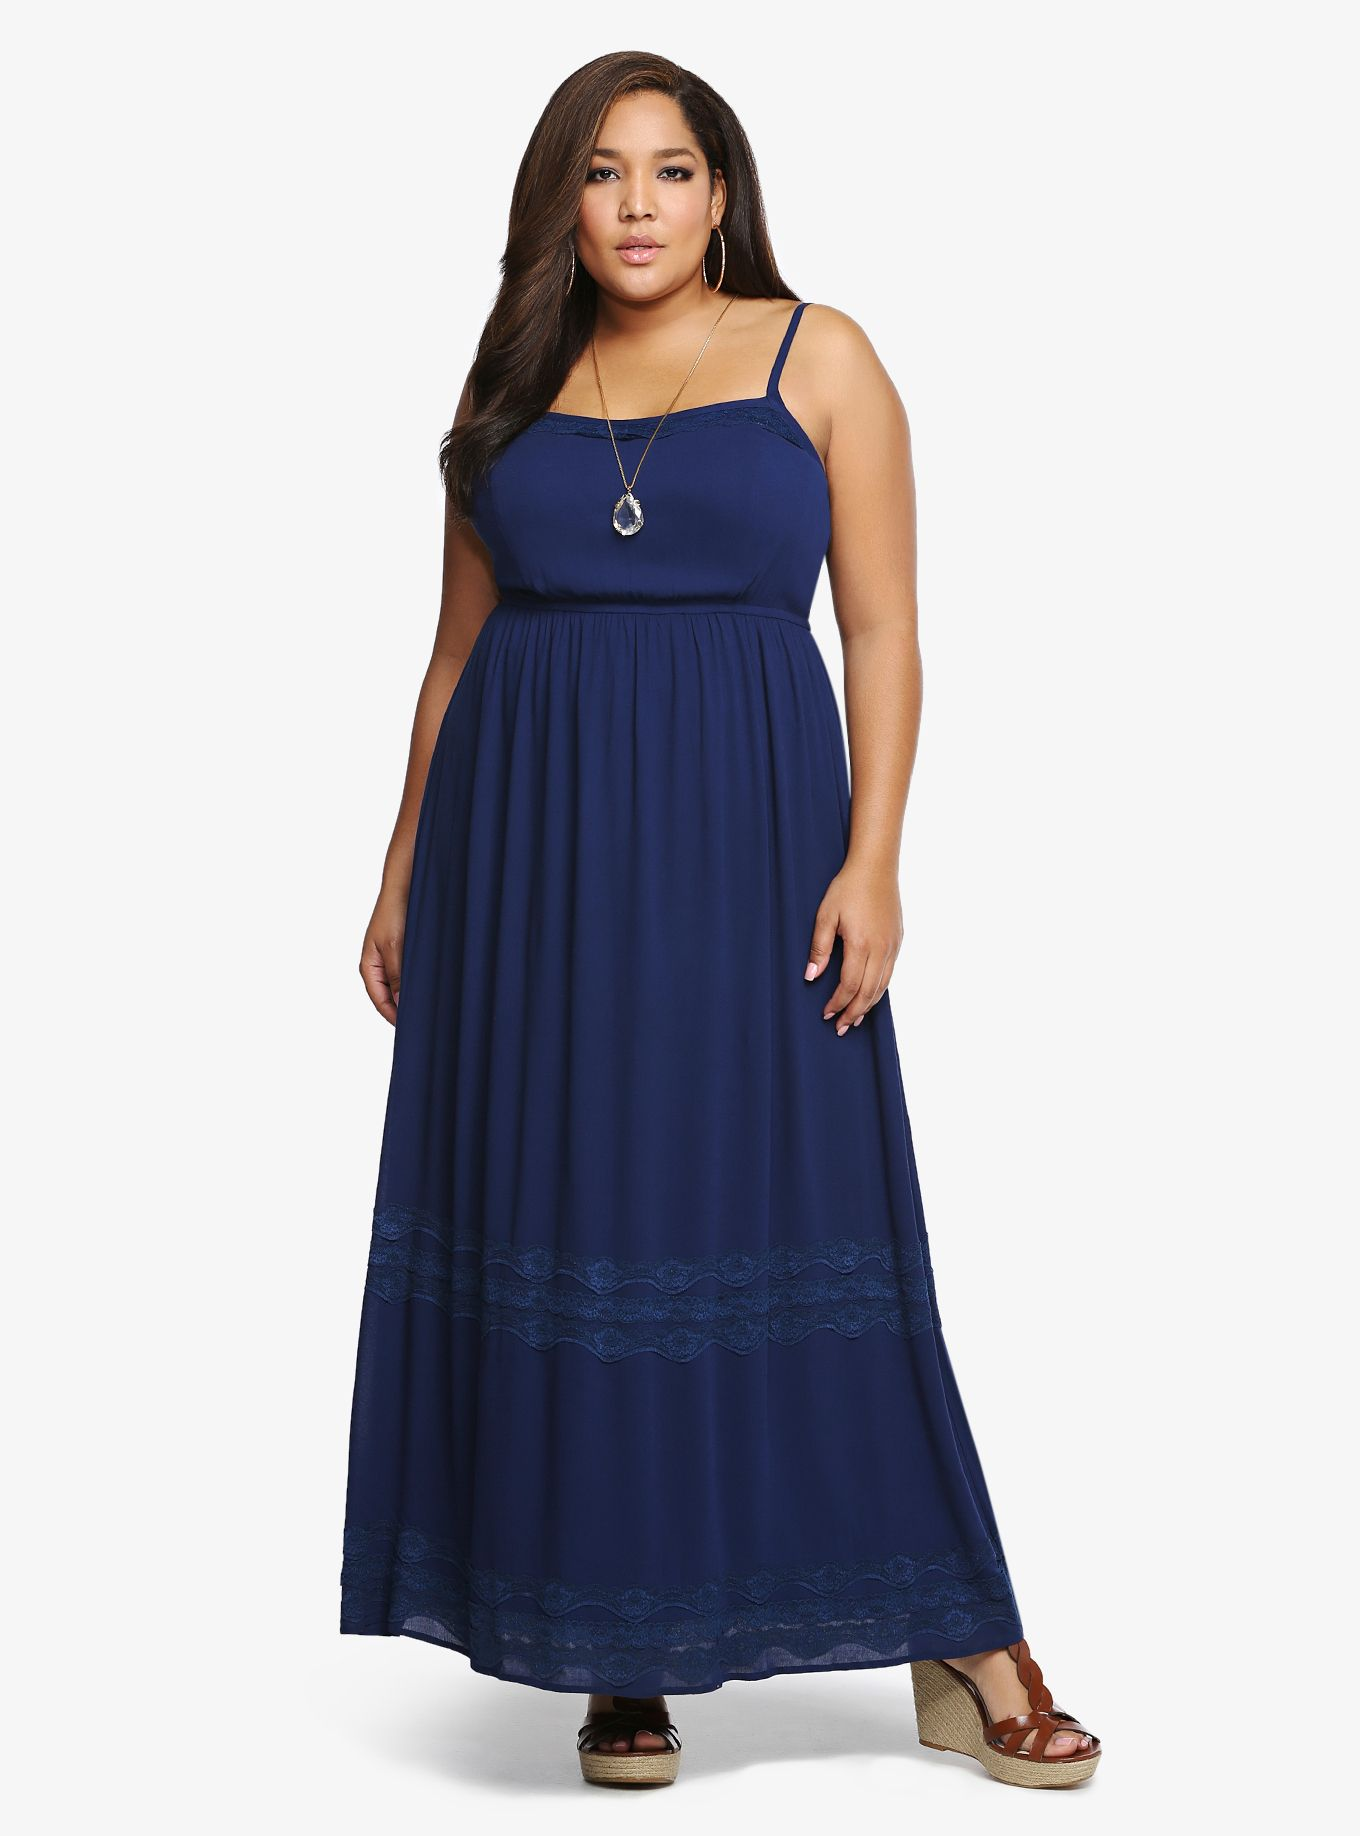 Long, Flowy evening dress for dinner at beach resort | Clothes To ...